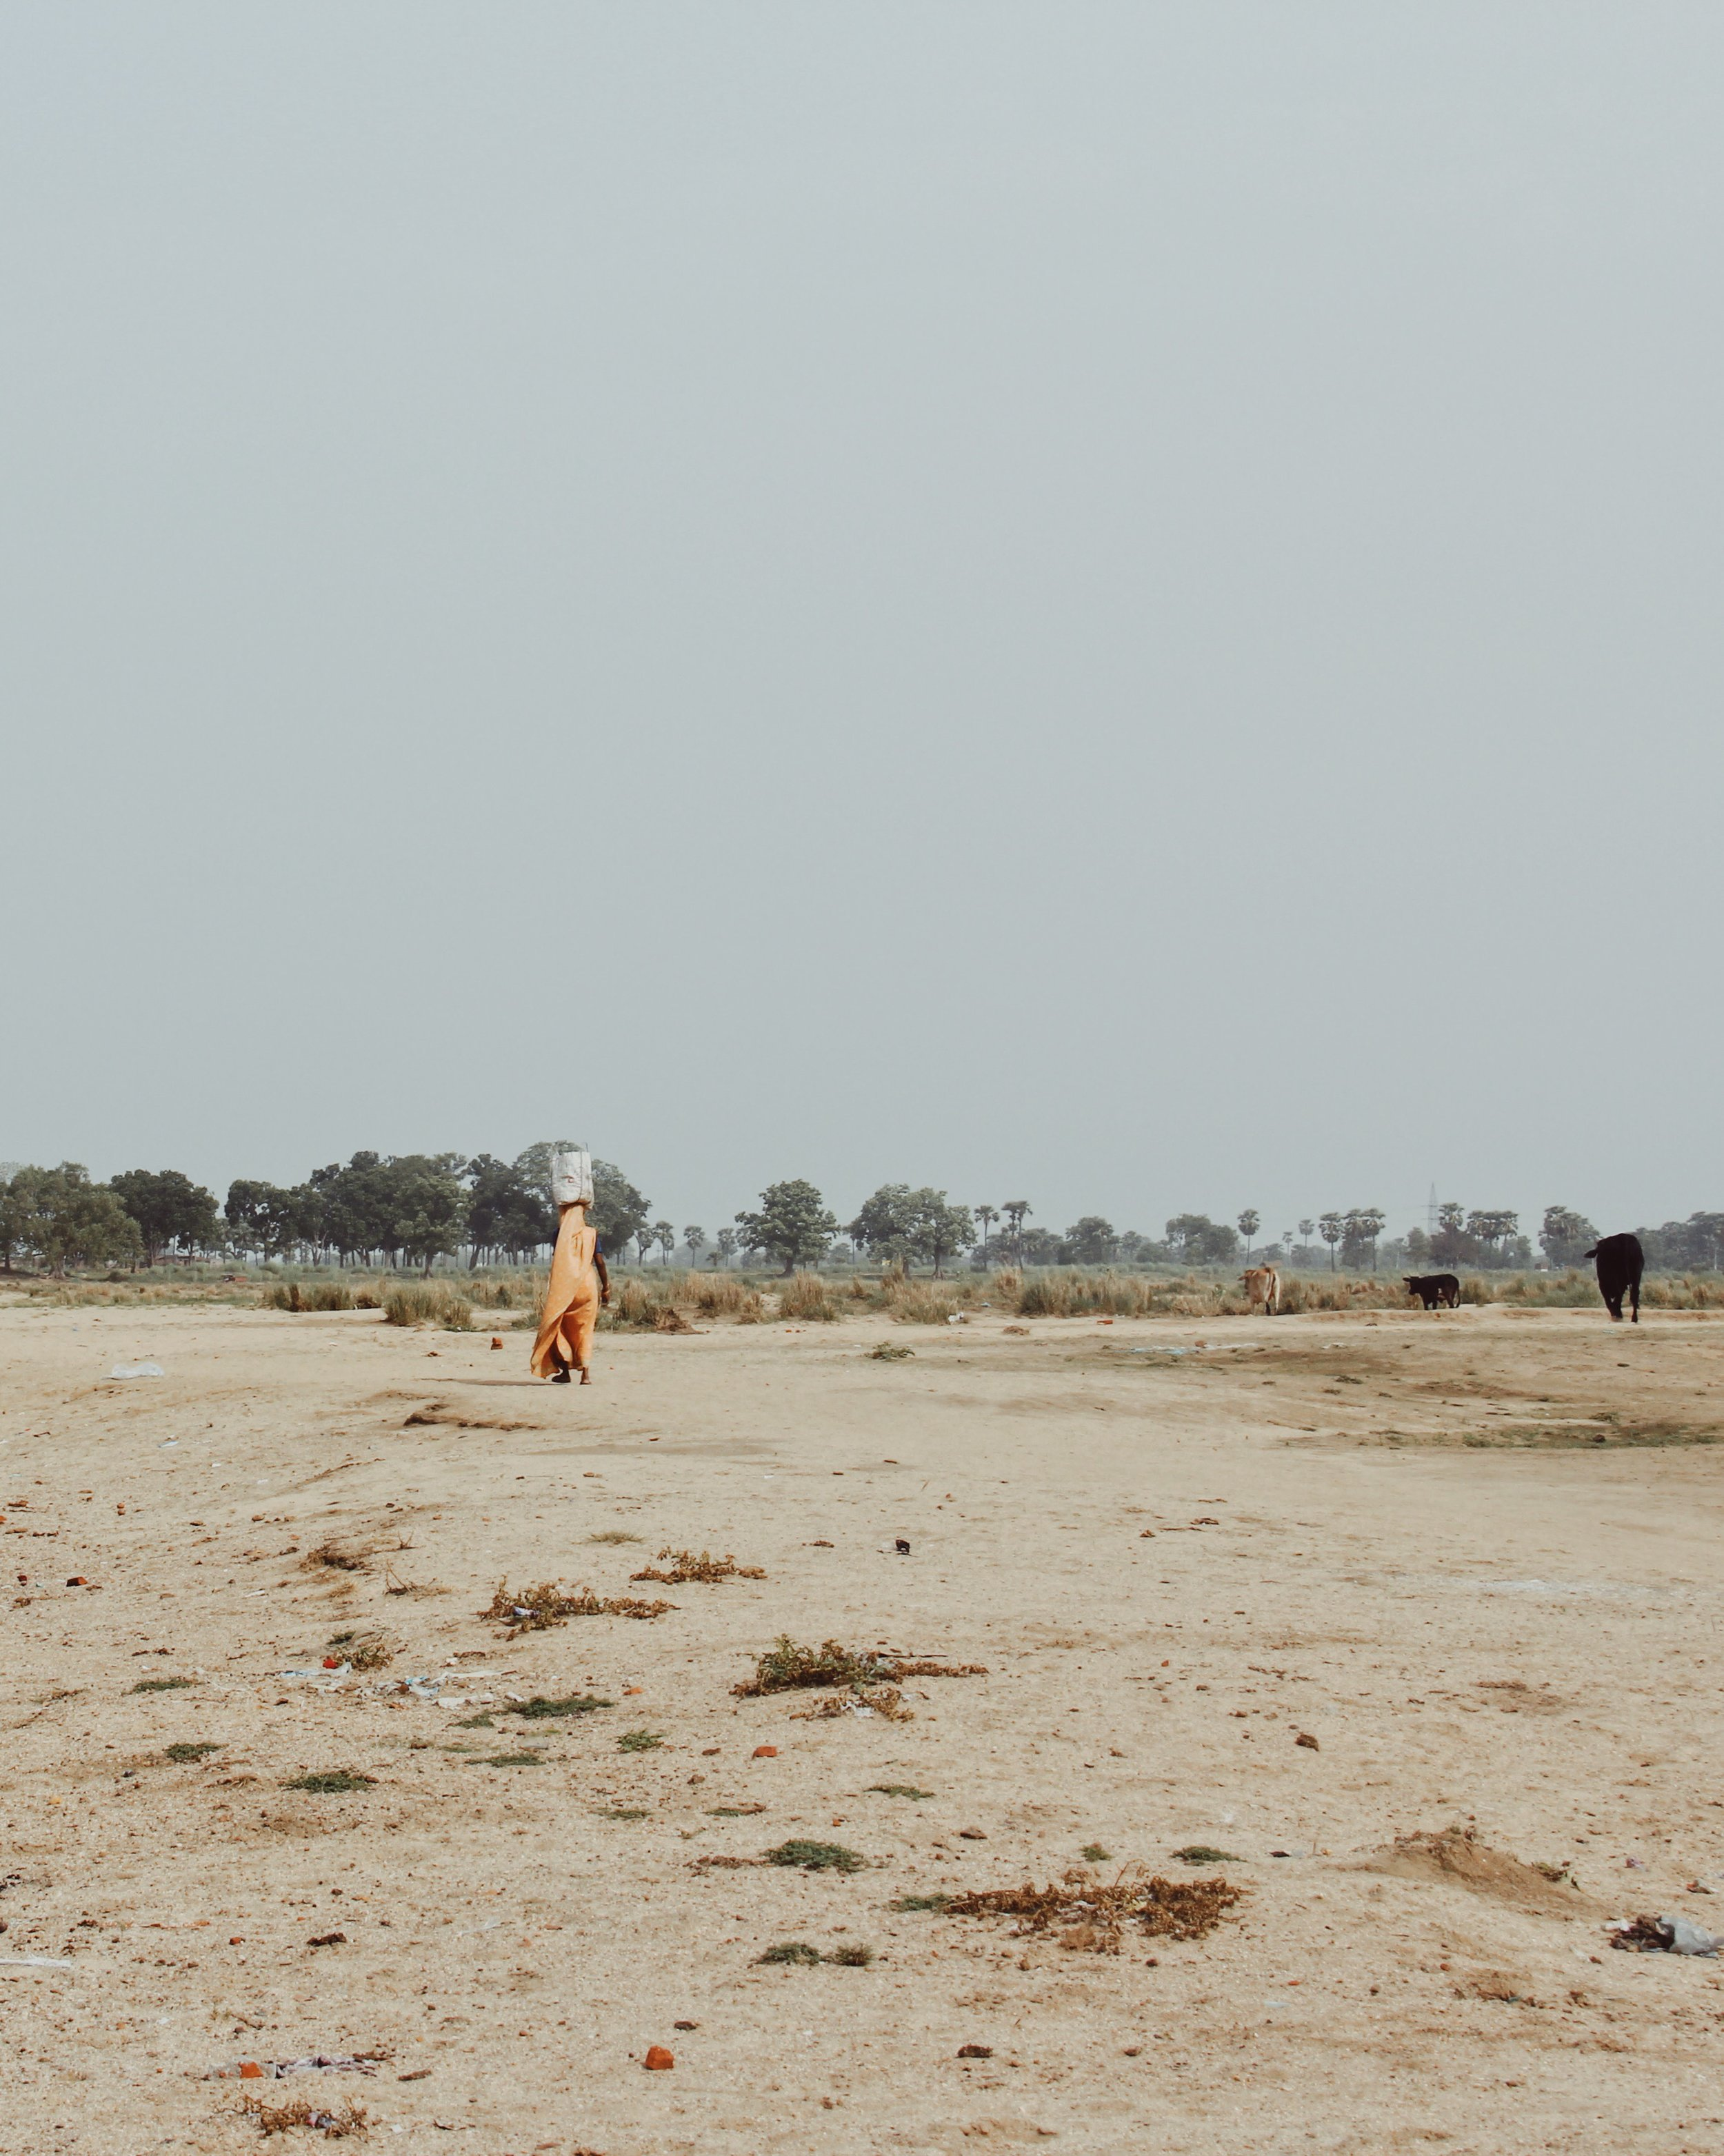 Crossing the dried up river bed of the Phalgu river in Bodh Gaya.